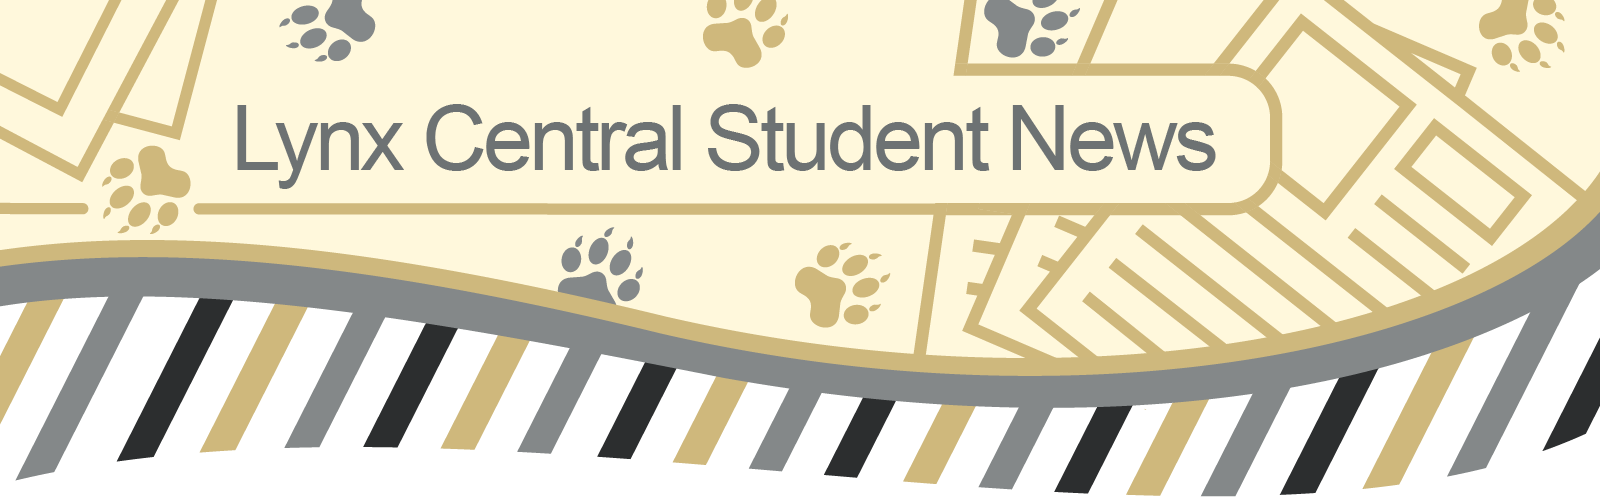 Masthead graphic with lynx paw prints